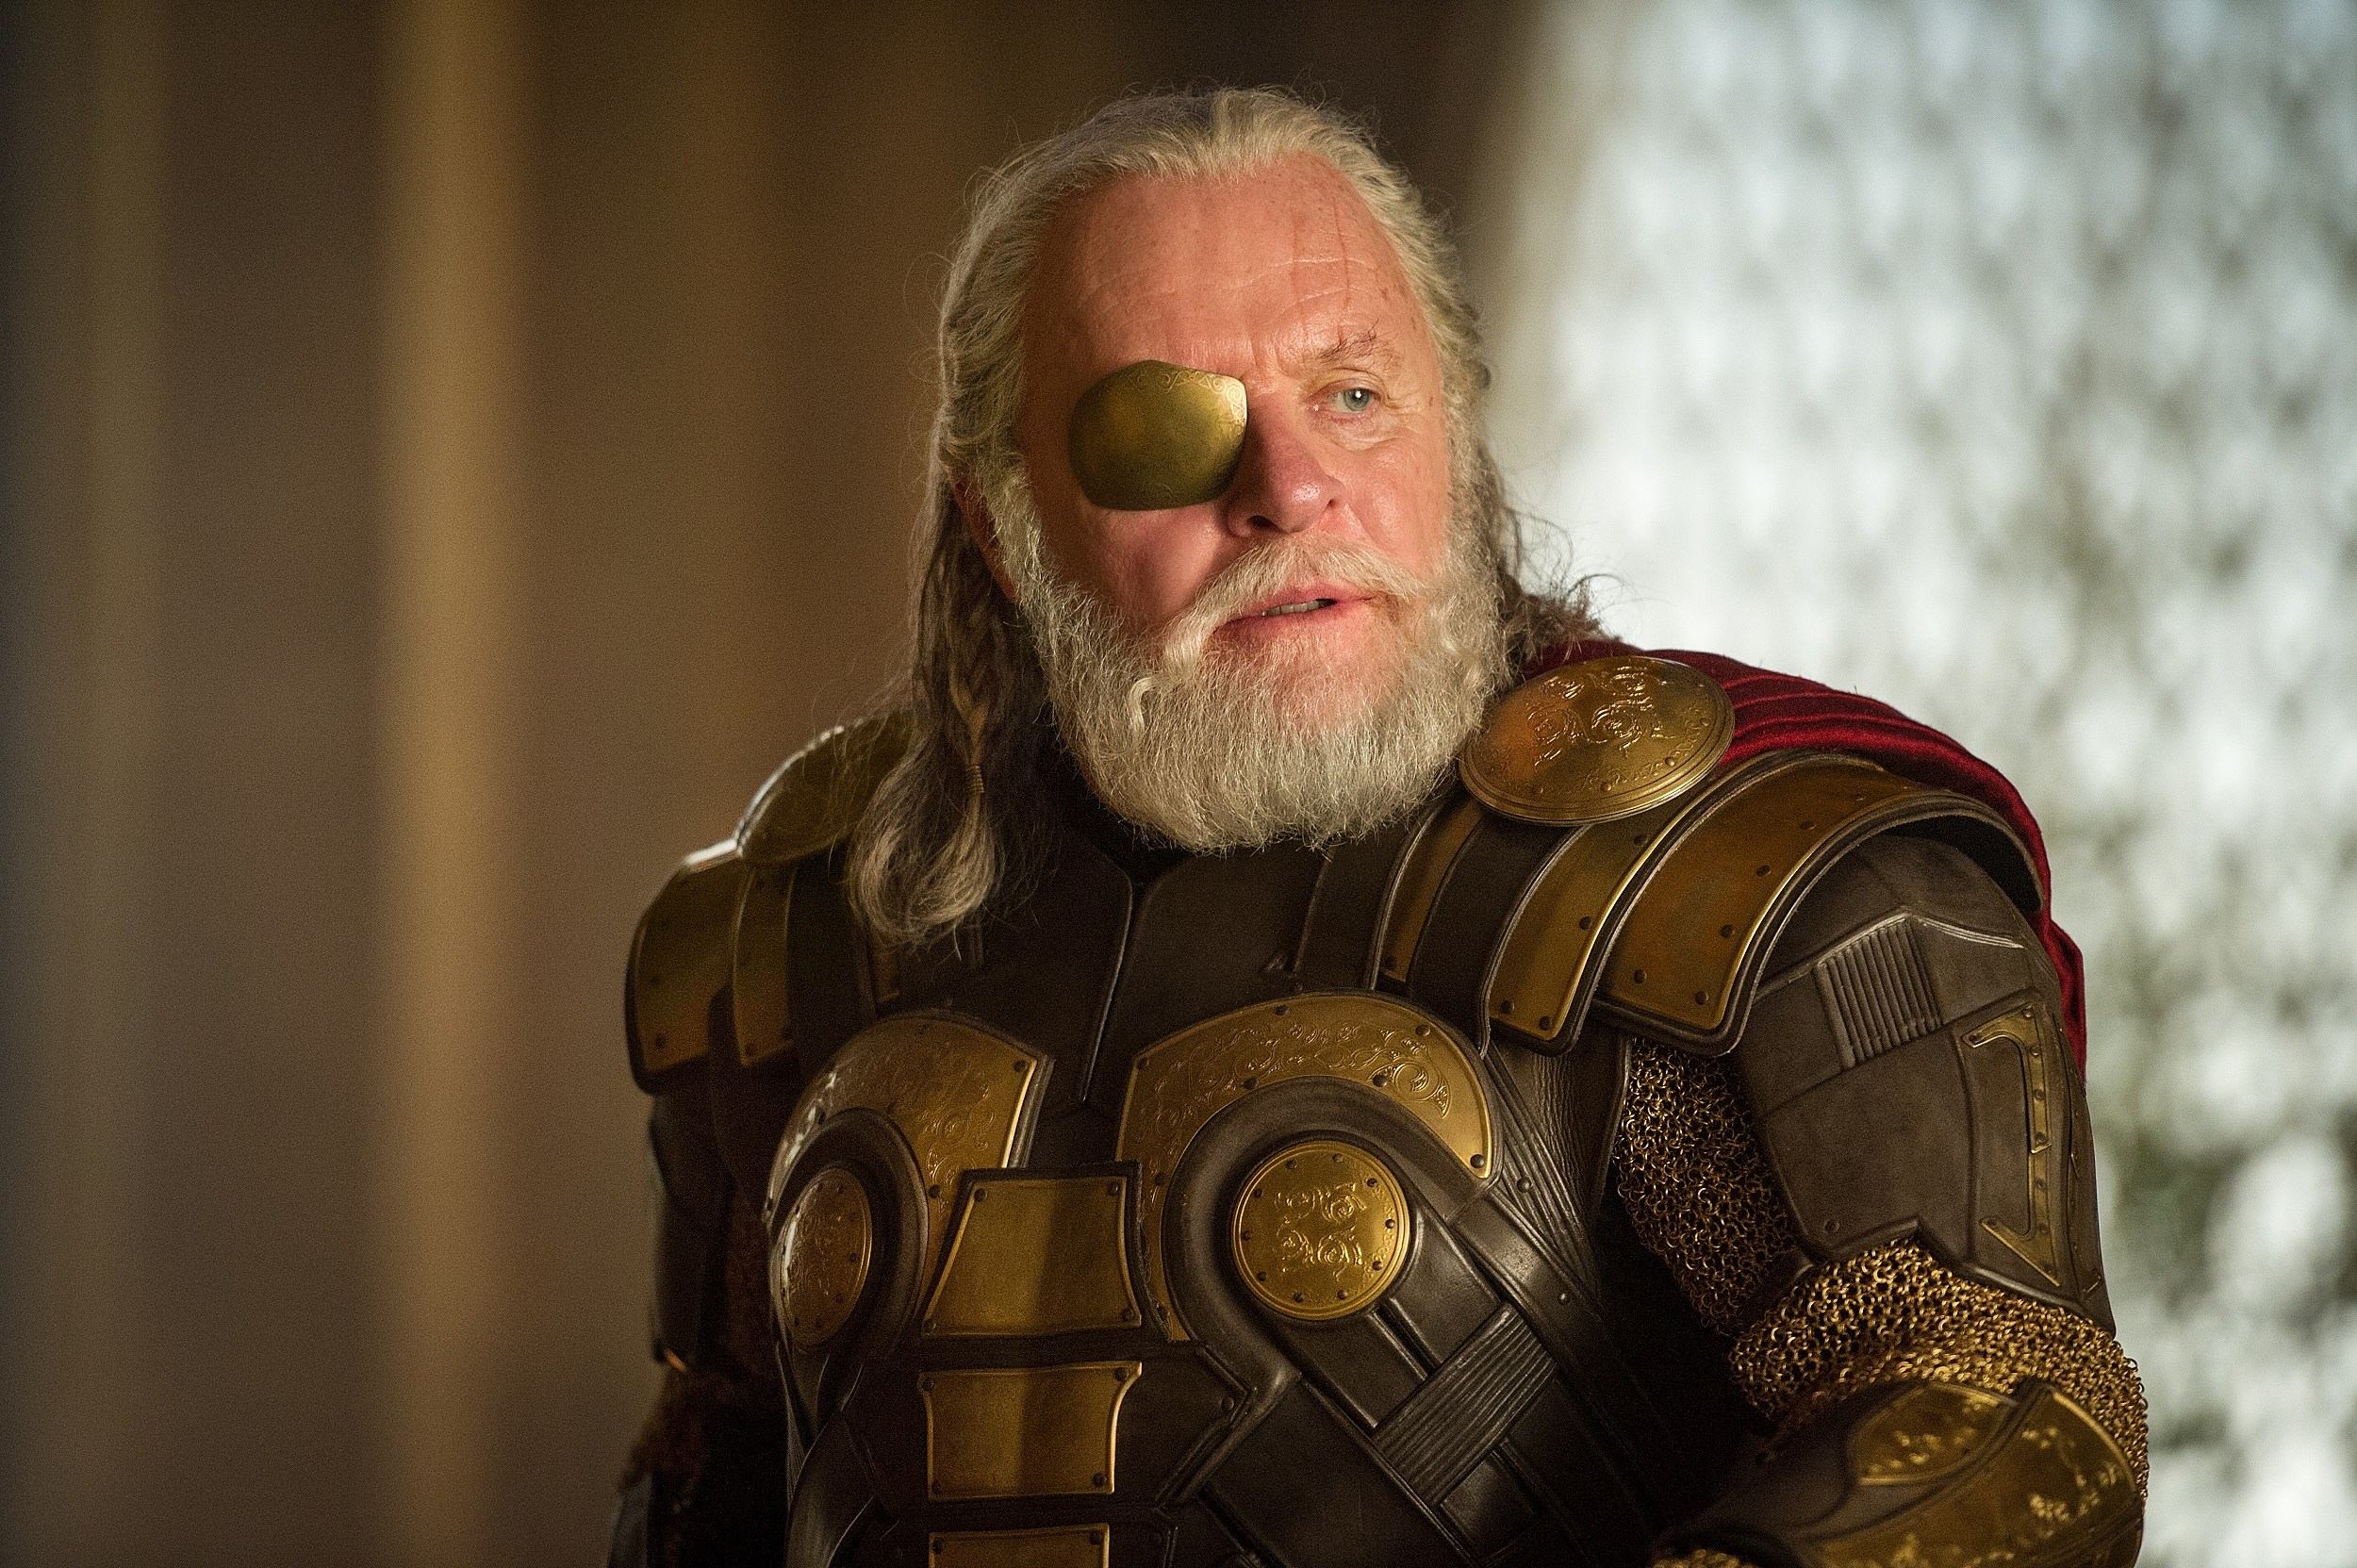 'Thor 2' Reveals More Than 40 New Photos of 'The Dark World'